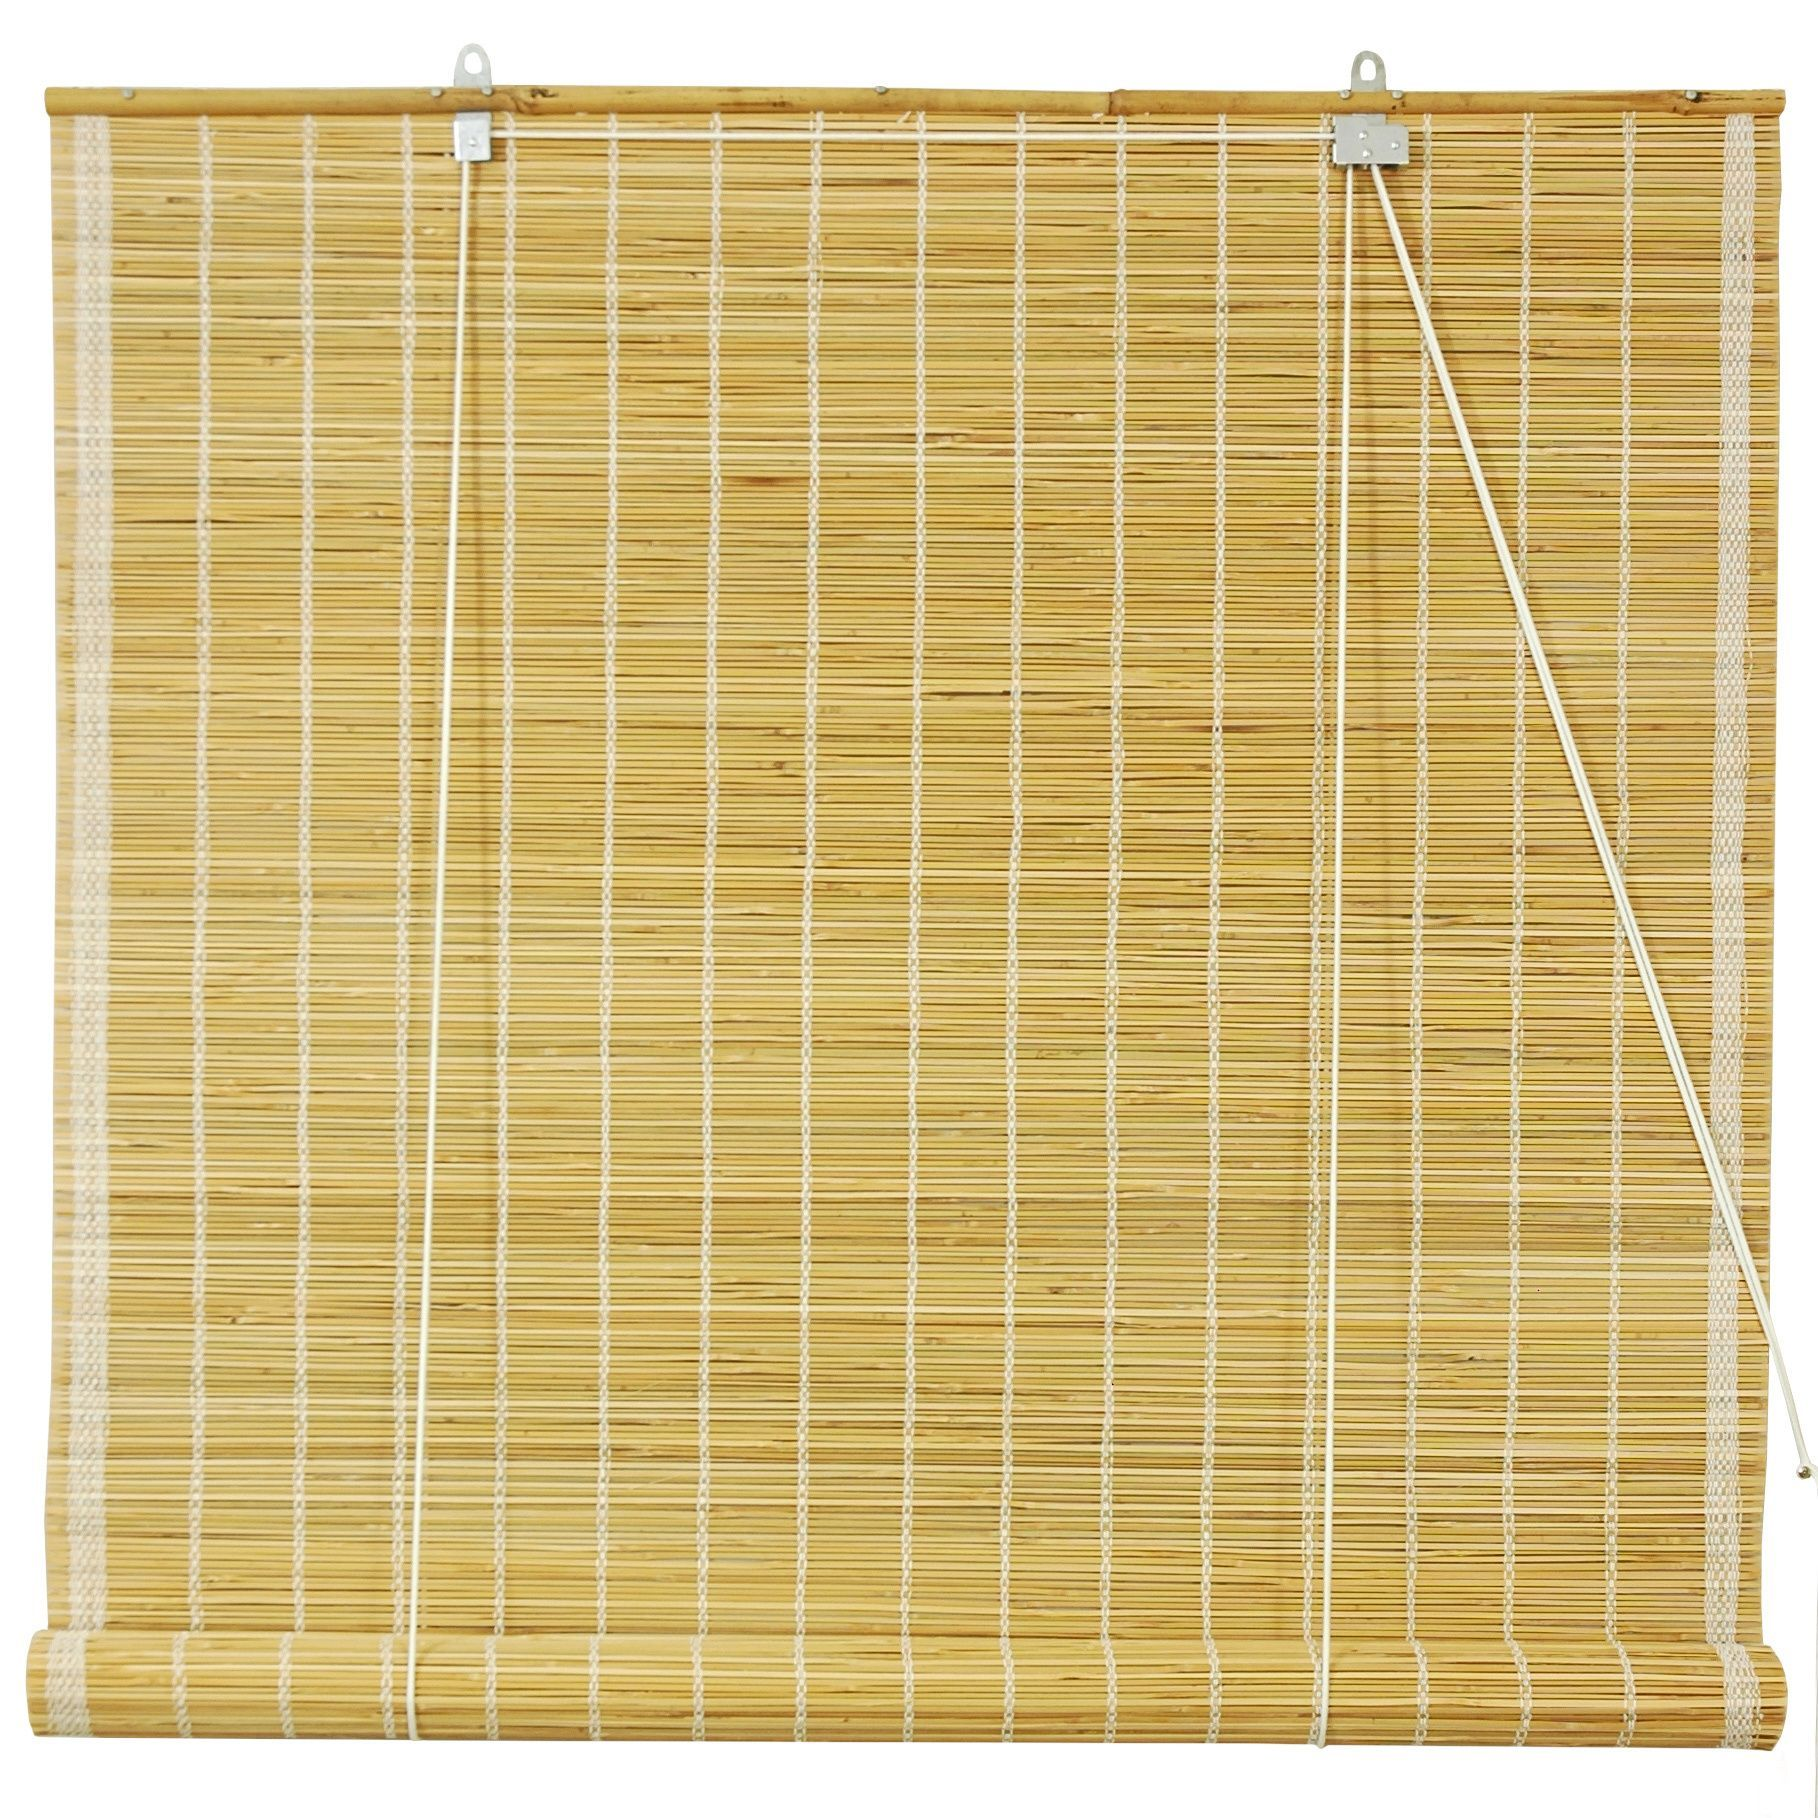 36 inch window blinds - Handmade 36 Inch Natural Matchstick Roll Up Blinds China